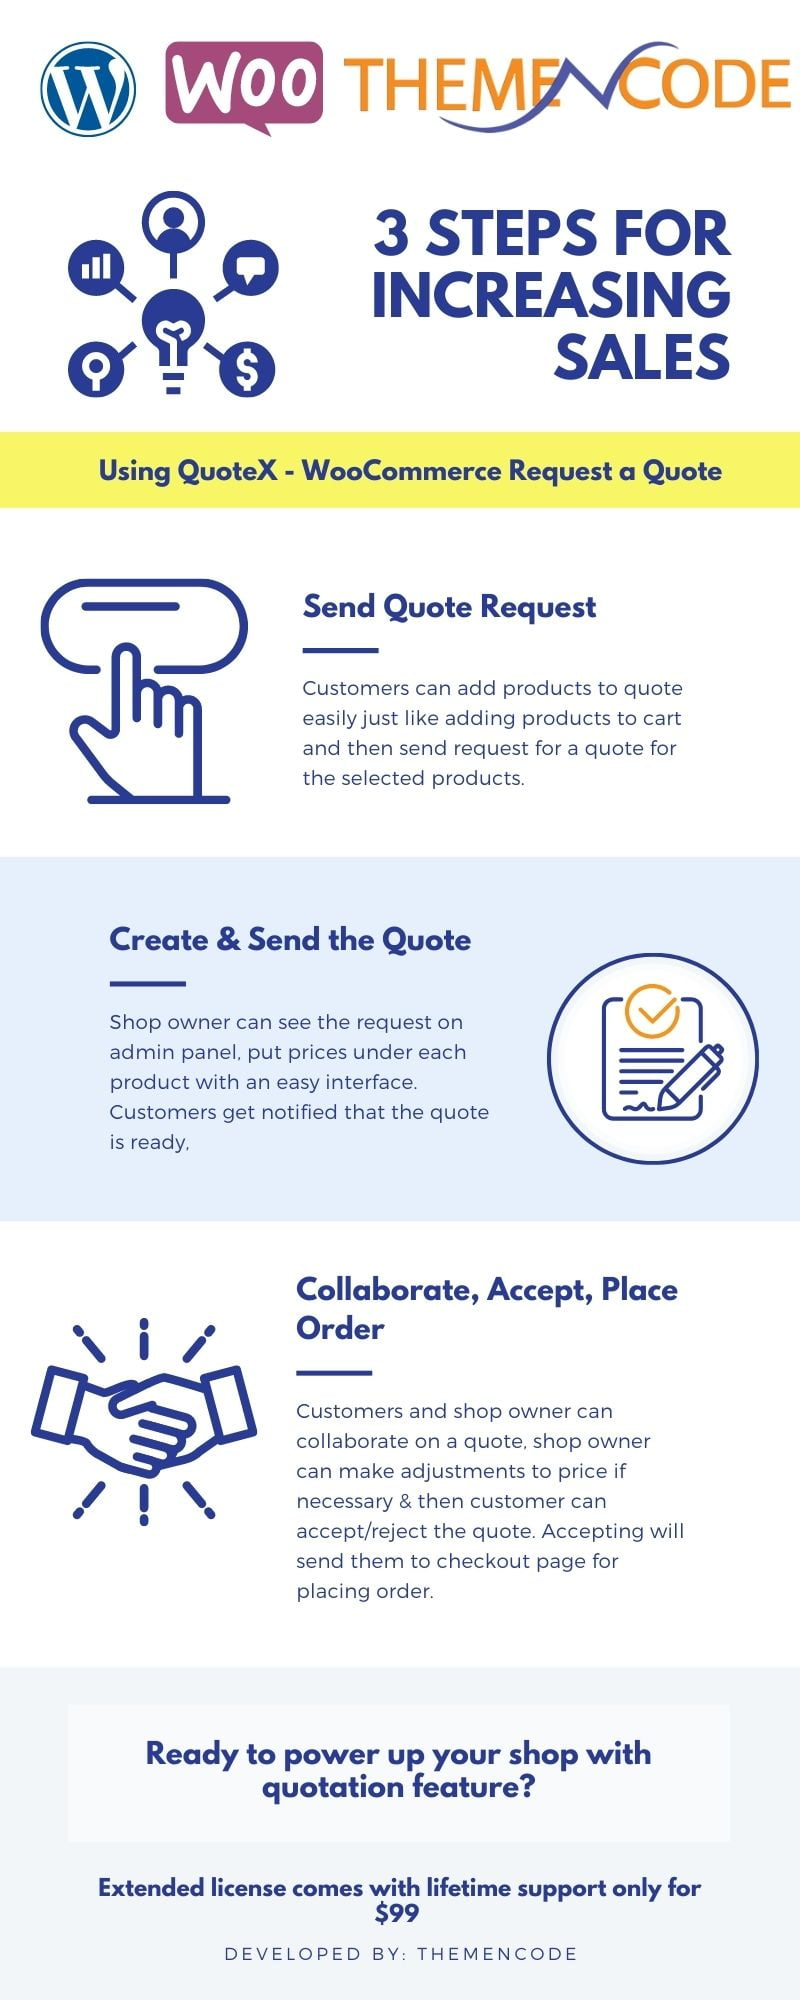 QuoteX - WooCommerce Request a Quote - 2